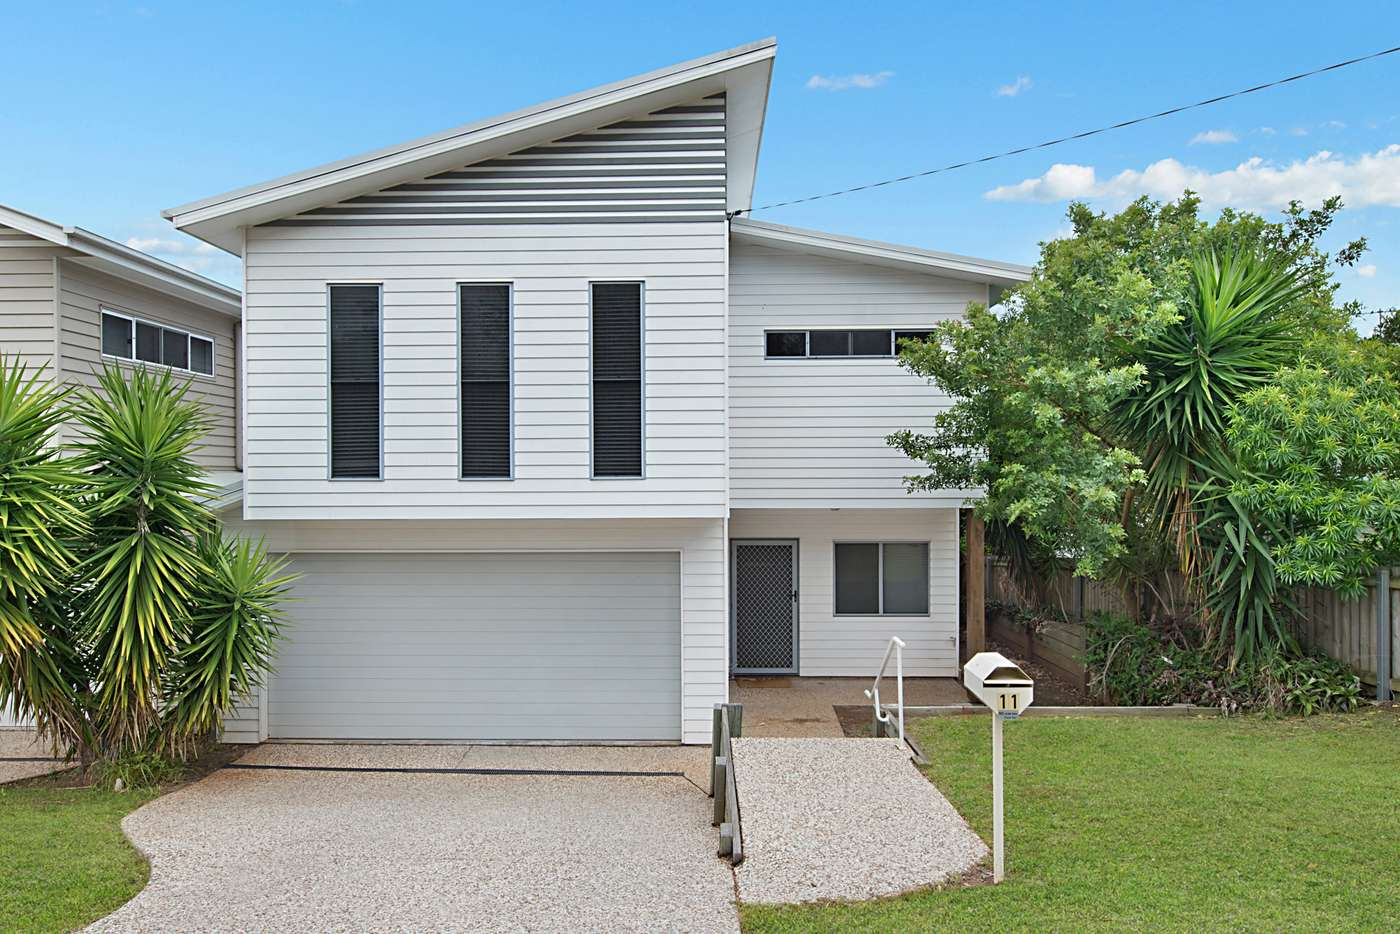 Main view of Homely house listing, 11 Wighton Street, Sandgate QLD 4017